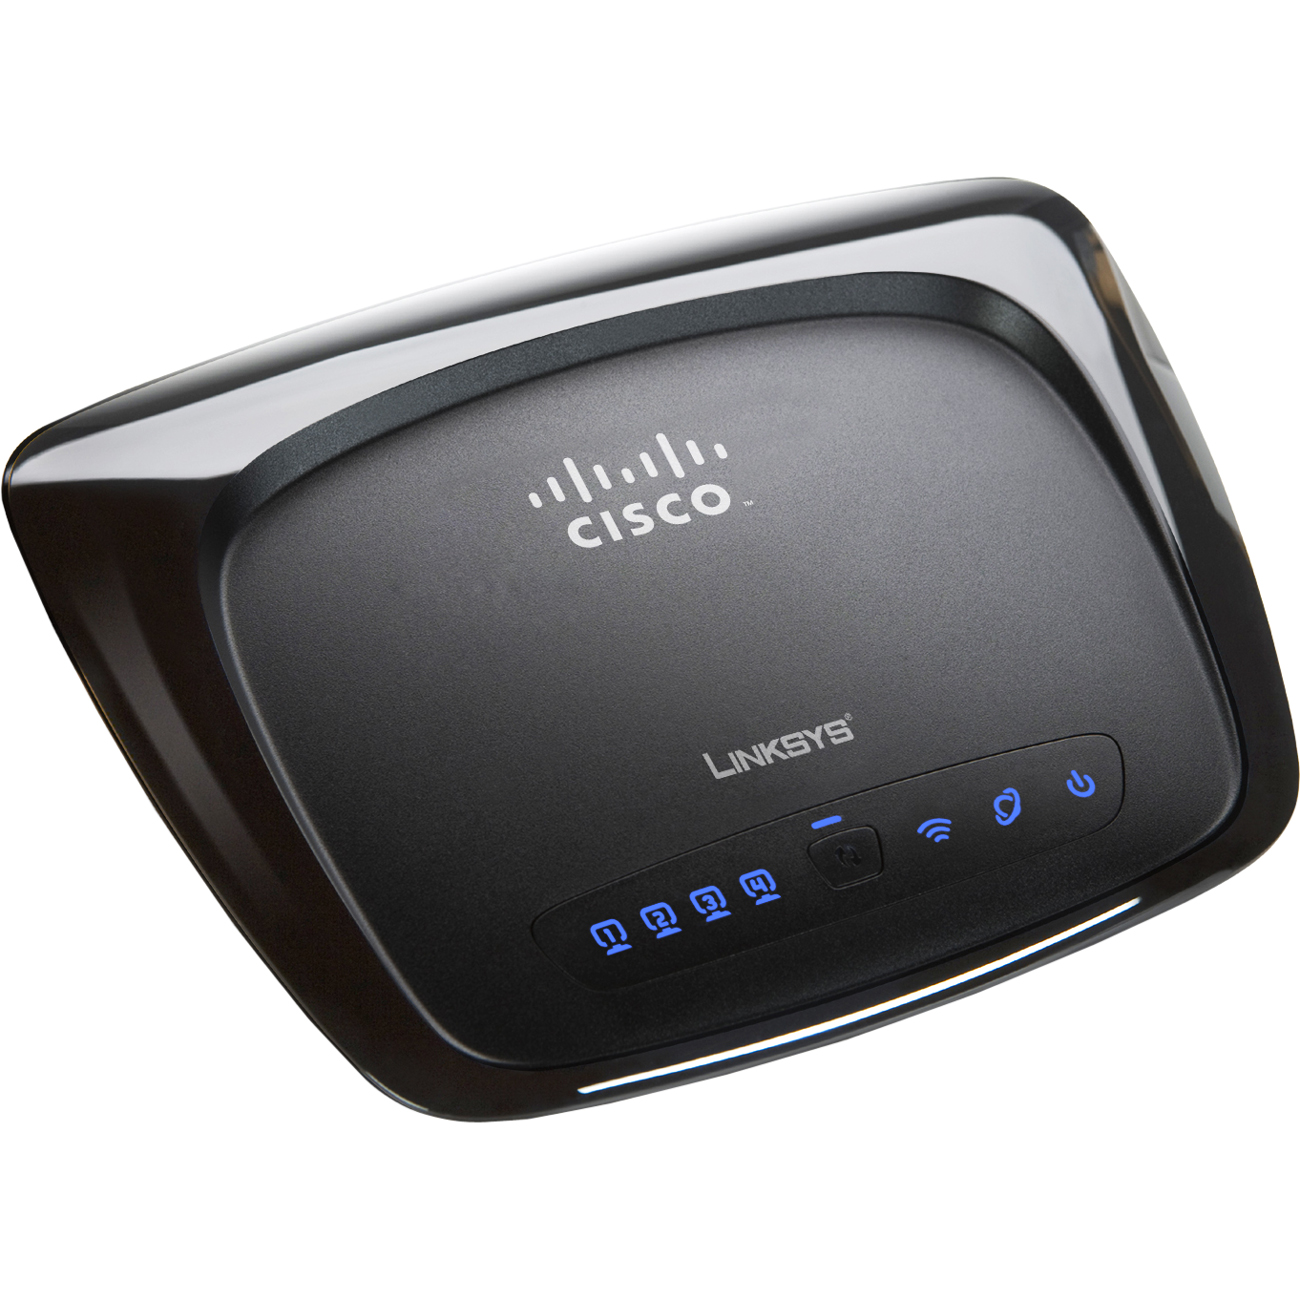 Cisco Linksys Wireless N Router, WRT120N - Walmart.com